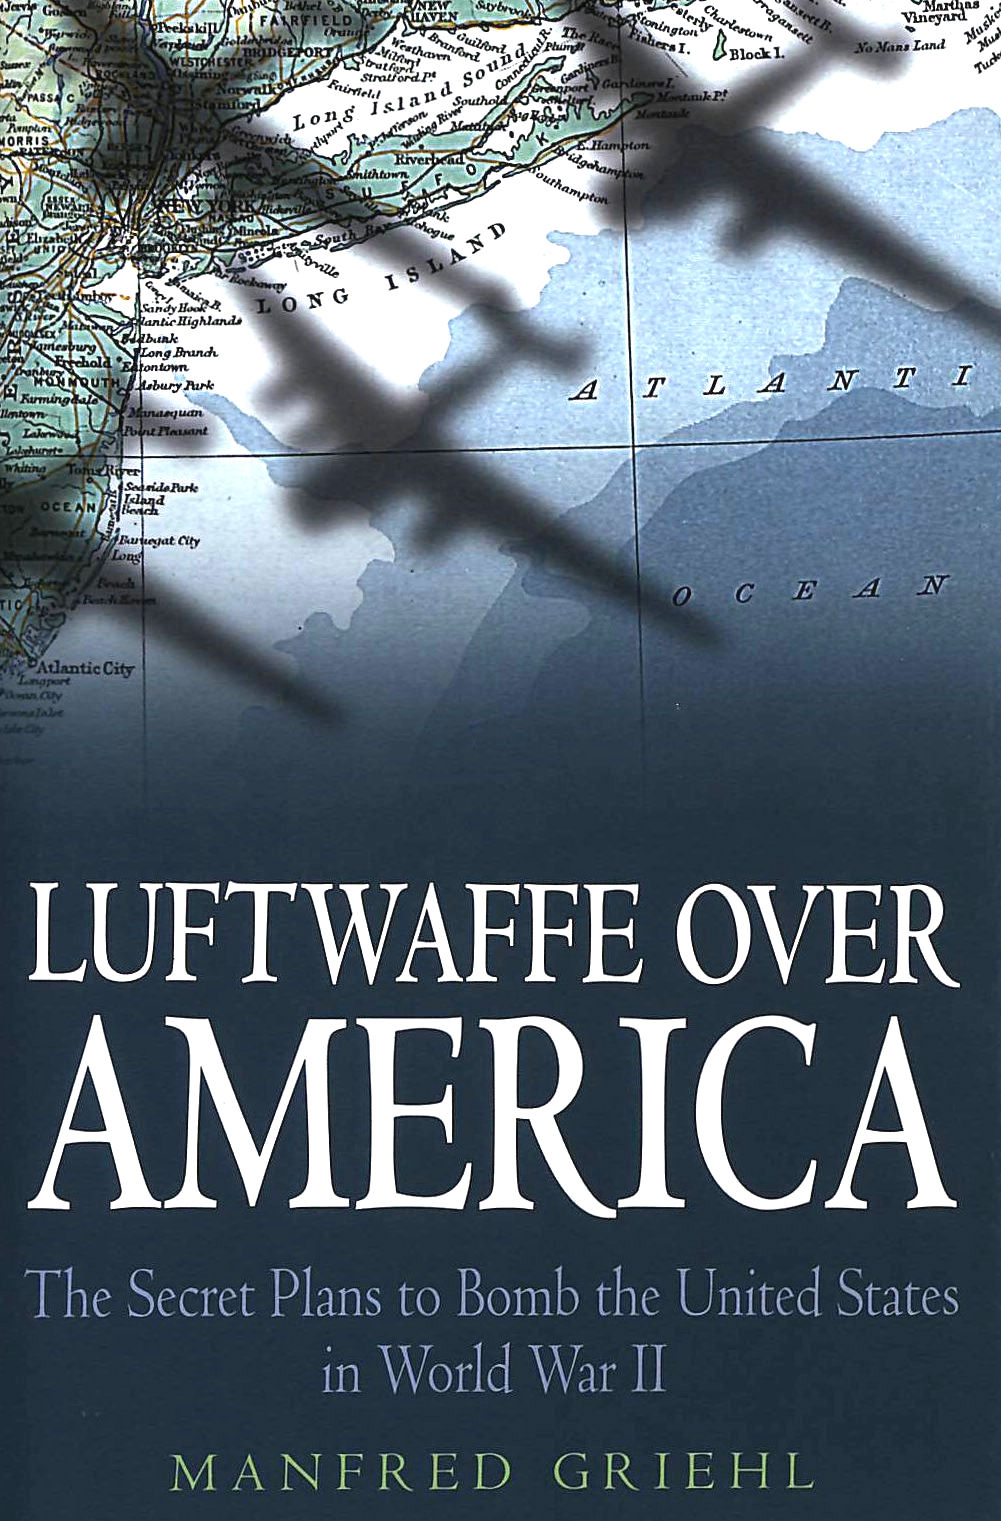 Image for Luftwaffe Over America: The Secret Plans to Bomb the United States in World War II